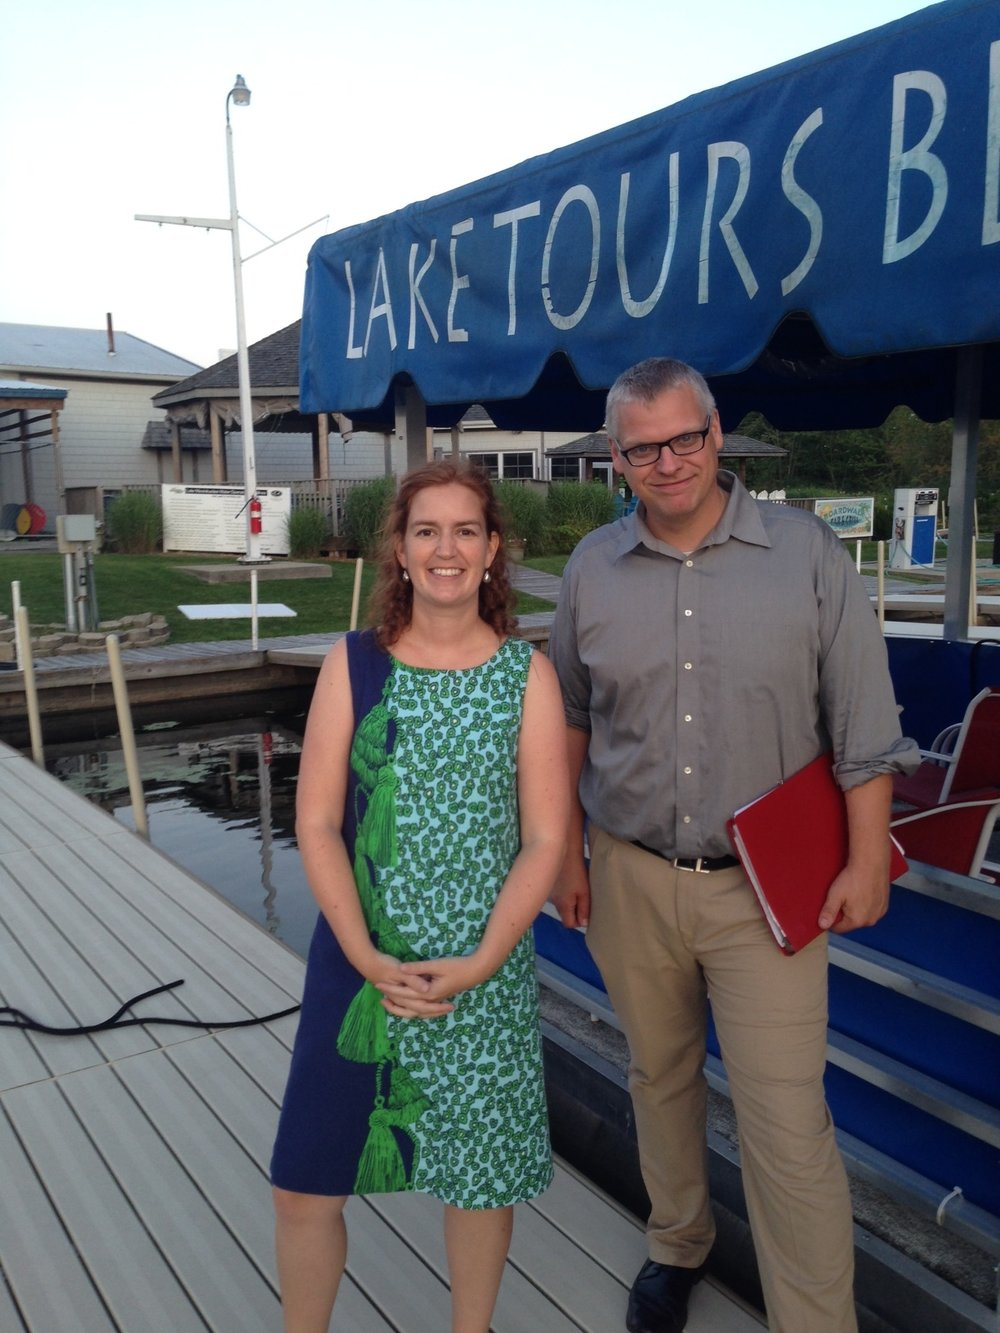 Jeff Kenney, Culver Academies Historian with Kathy Taylor, Indiana Historical Society Photo Librarian, after the 2017 Vonnegut House Boat Tour